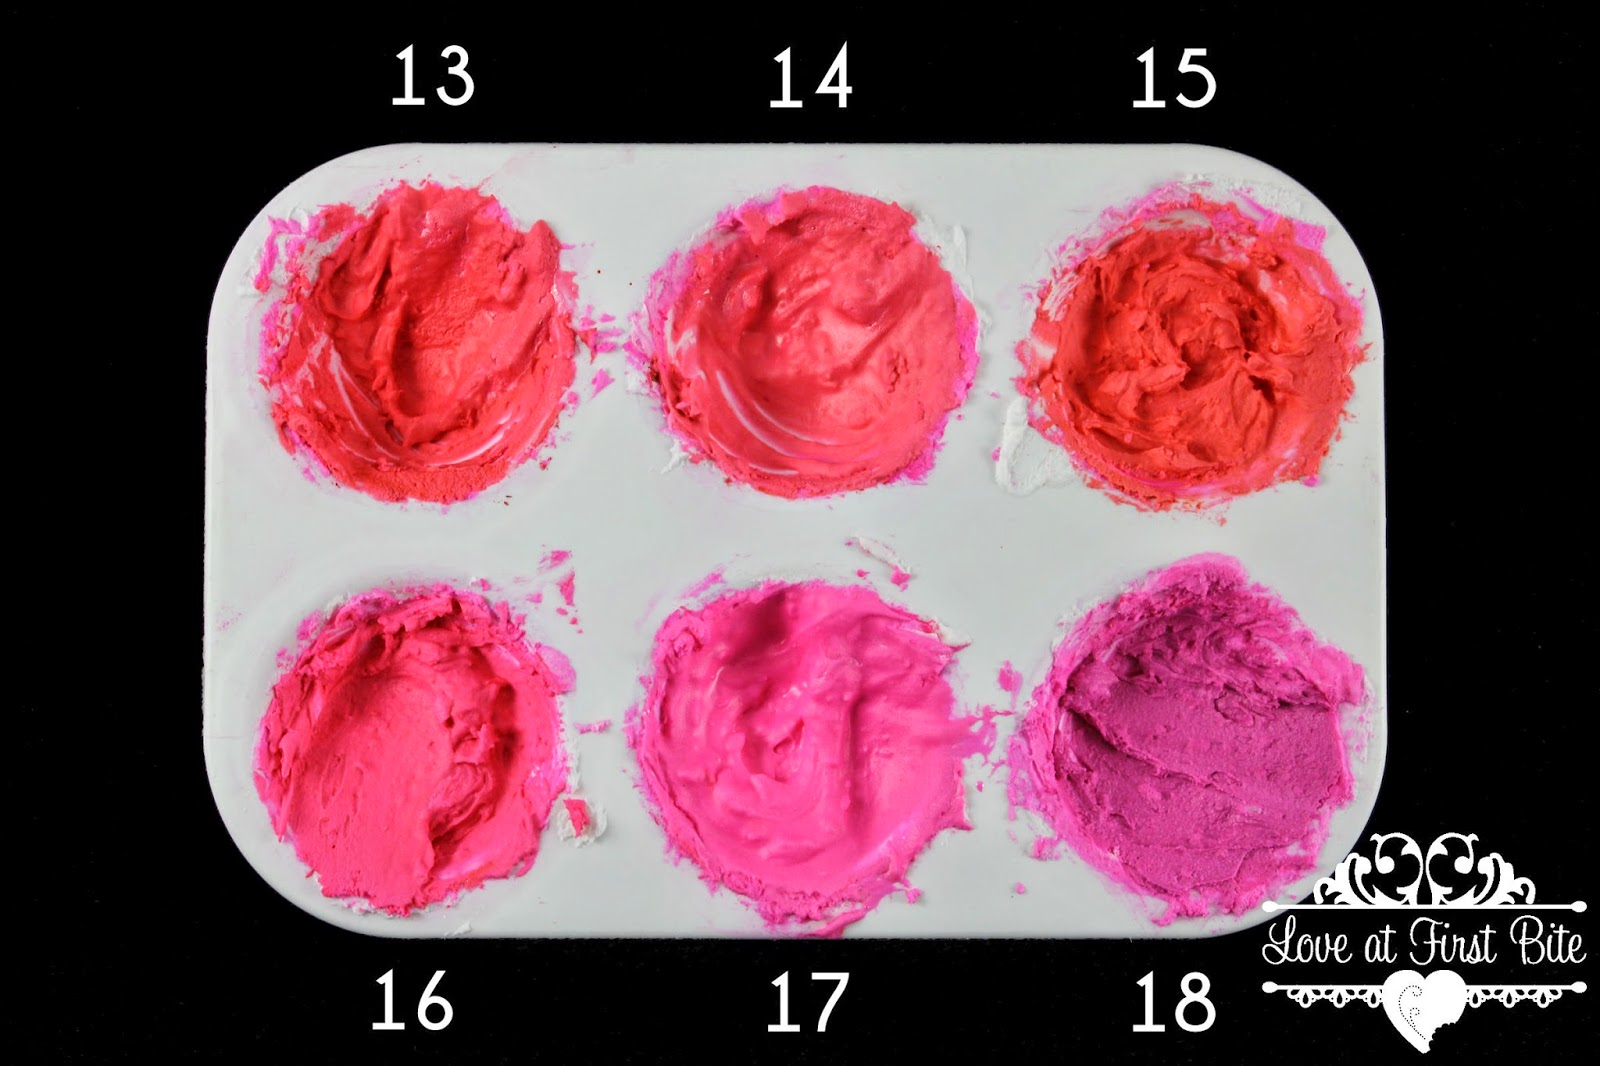 Electric Pink Mixed With Primary Reds 13 Super Red 14 15 Tulip 16 Xmas 17 Holiday 18 Burgundy